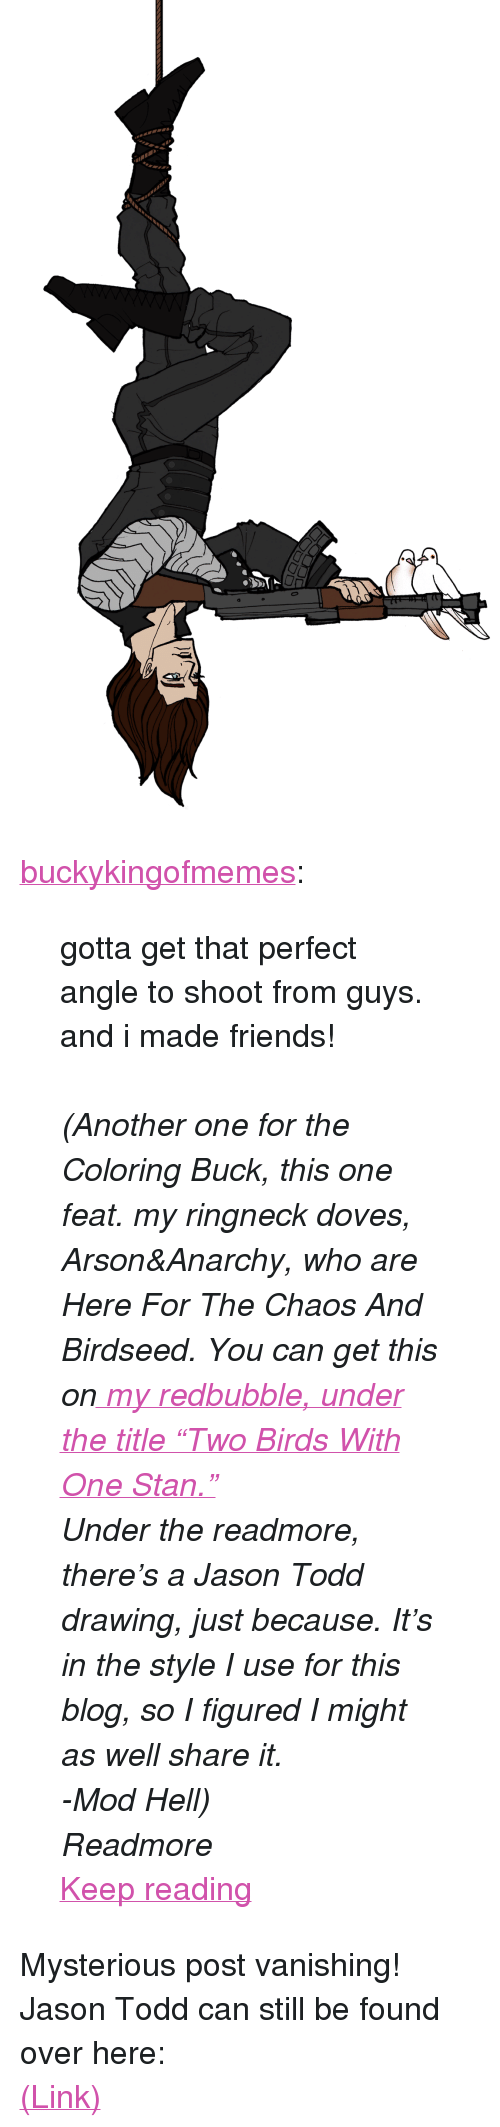 """Another One, Friends, and Stan: <p><a href=""""http://buckykingofmemes.tumblr.com/post/164429939636/gotta-get-that-perfect-angle-to-shoot-from-guys"""" class=""""tumblr_blog"""">buckykingofmemes</a>:</p> <blockquote> <p>gotta get that perfect angle to shoot from guys. and i made friends!</p> <p><br/></p> <p><i>(Another one for the Coloring Buck, this one feat. my ringneck doves, Arson&amp;Anarchy, who are Here For The Chaos And Birdseed. You can get this on<a href=""""https://www.redbubble.com/people/buckykingofmeme?asc=u""""> my redbubble, under the title""""Two Birds With One Stan.""""</a></i></p> <p><i>Under the readmore, there's a Jason Todd drawing, just because. It's in the style I use for this blog, so I figured I might as well share it.</i></p> <p><i>-Mod Hell)</i></p> <p><i>Readmore</i></p> <p><a href=""""http://buckykingofmemes.tumblr.com/post/164429939636/gotta-get-that-perfect-angle-to-shoot-from-guys"""" class=""""tmblr-truncated-link read_more"""">Keep reading</a></p> </blockquote> <p>Mysterious post vanishing! Jason Todd can still be found over here:</p><p><a href=""""http://hellenhighwater.tumblr.com/post/164429454415/jason-todd-i-recently-ish-followed"""">(Link)</a></p>"""